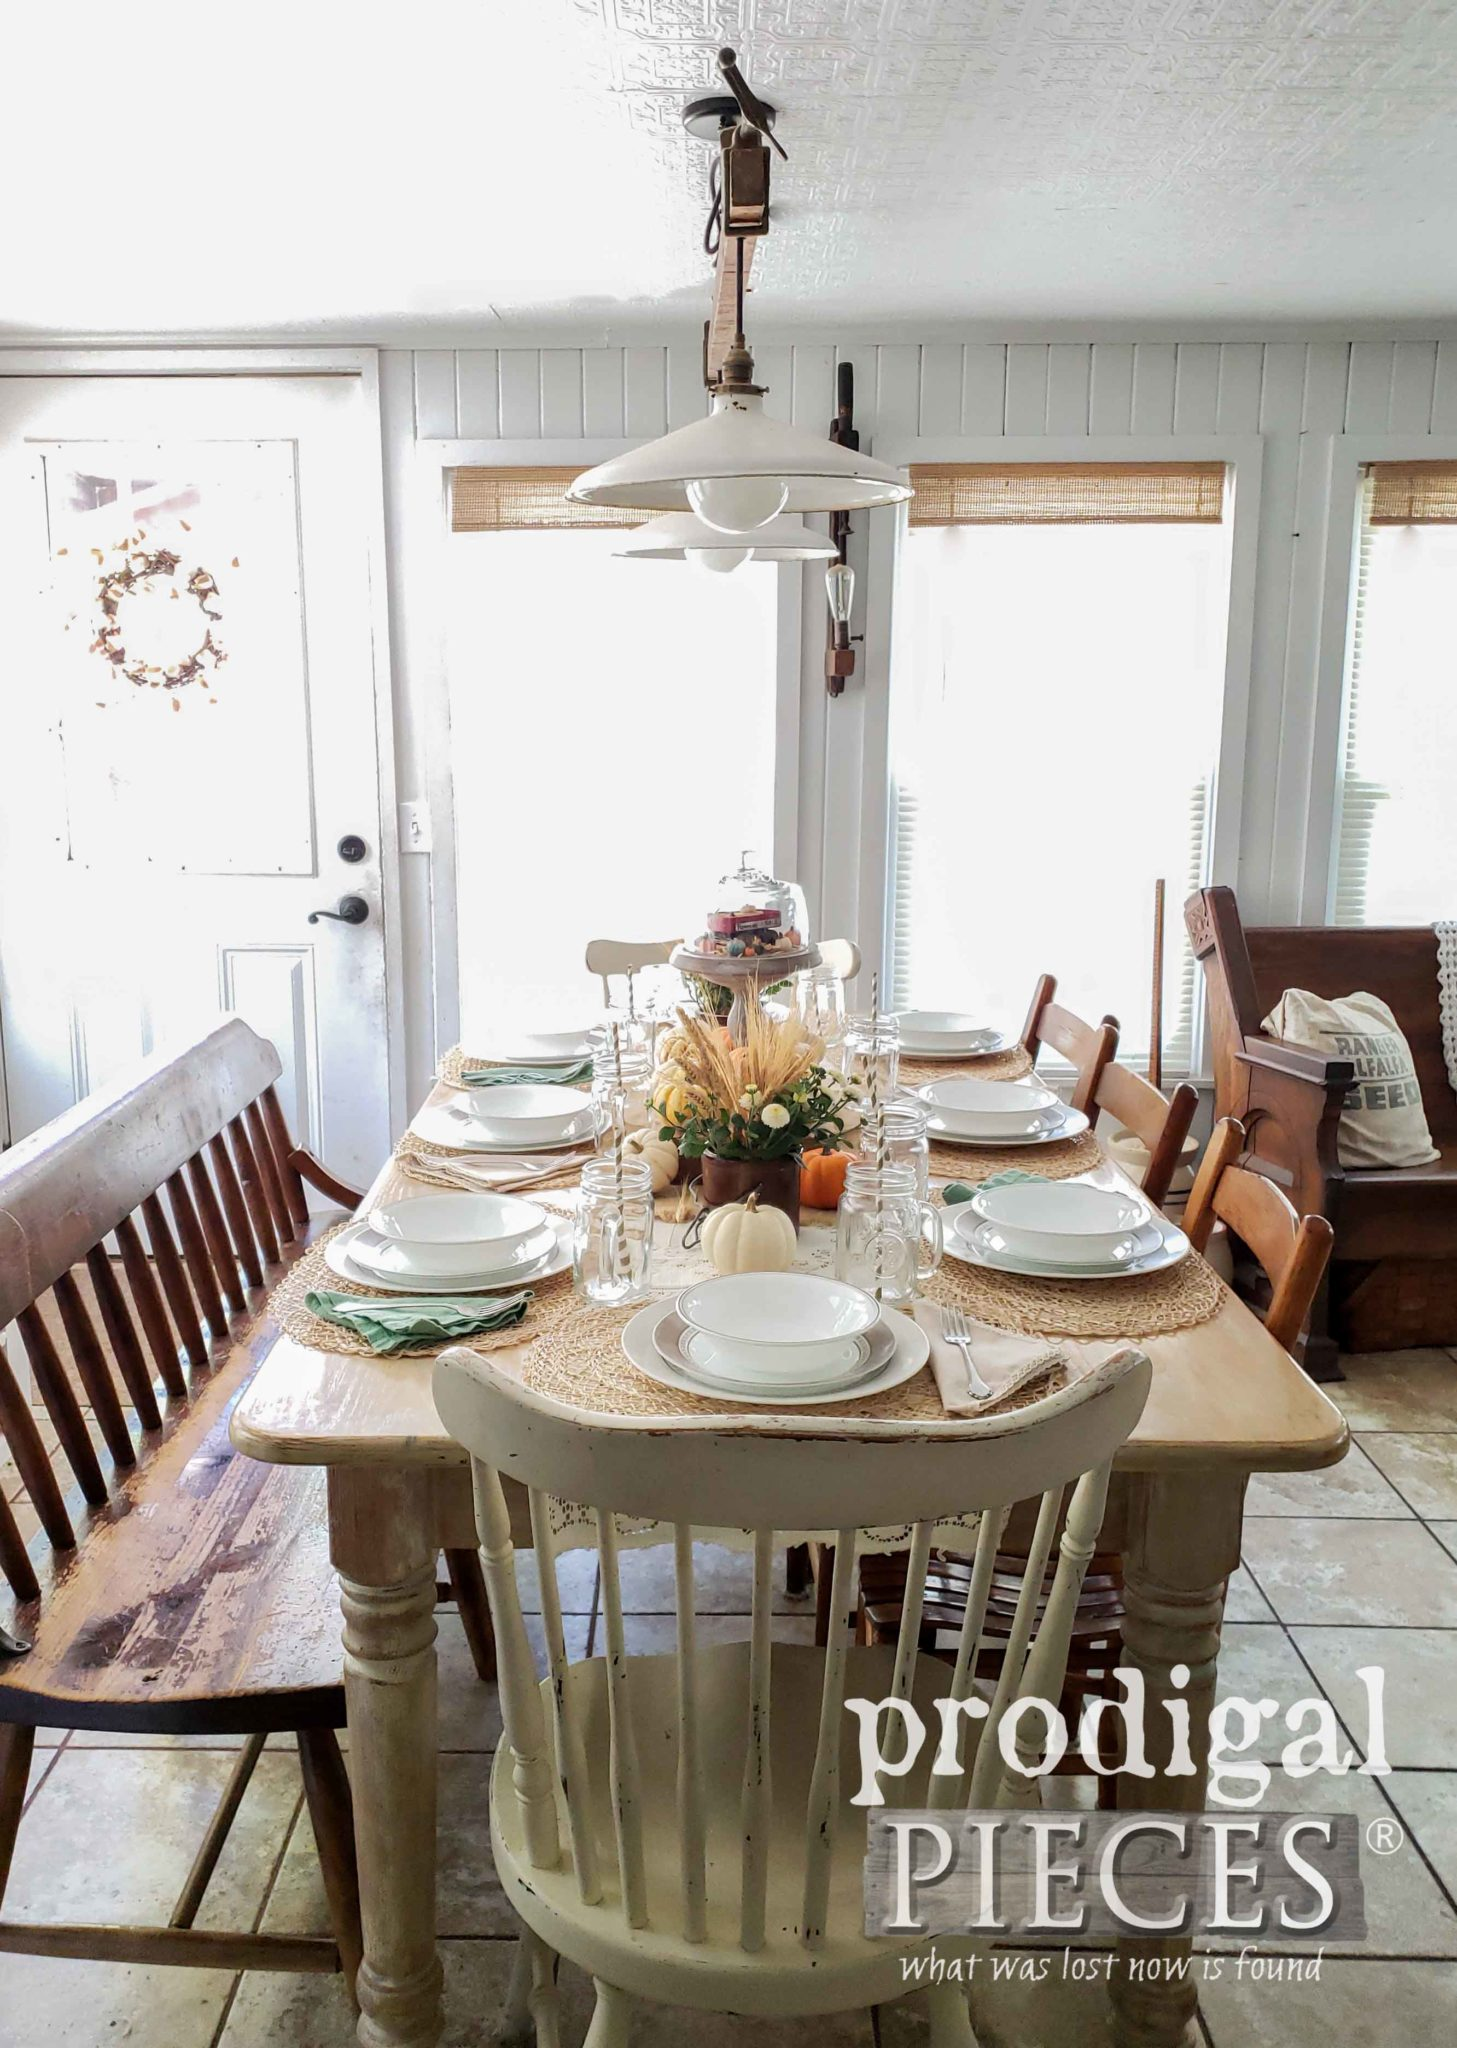 Handmade Farmhouse Style Dining Table with Fall Tablescape by Larissa of Prodigal Pieces | prodigalpieces.com